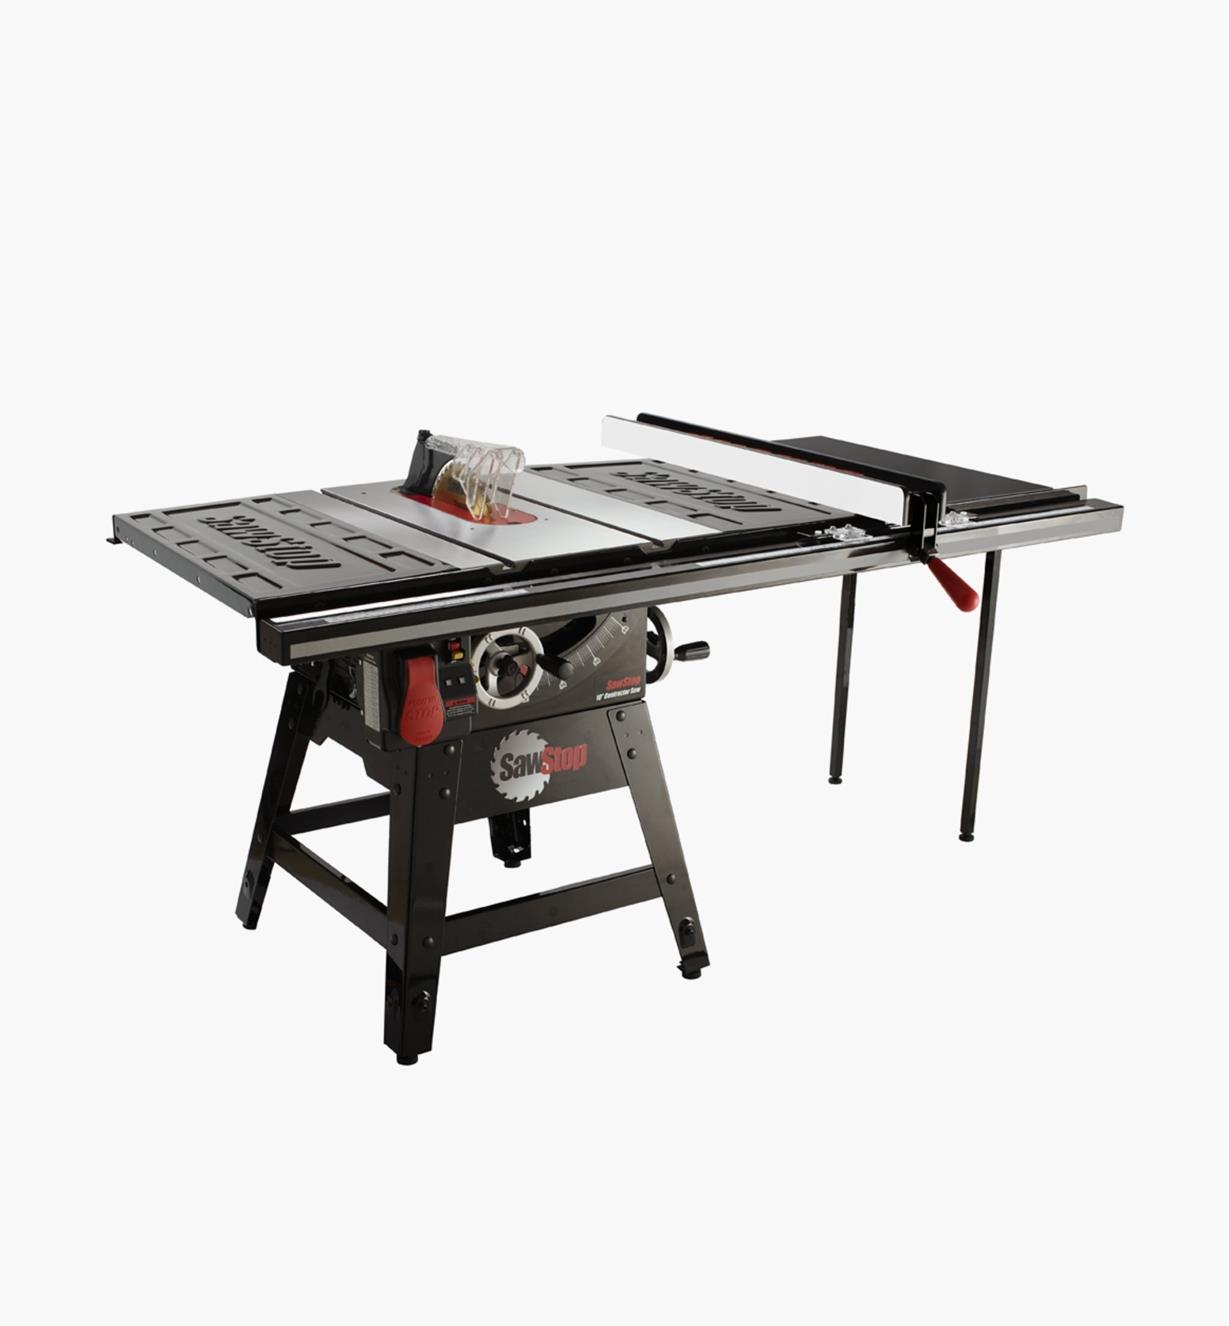 "95T2081 - SawStop Contractor Table Saw with Pro T-Glide Fence, 36"" Rails"